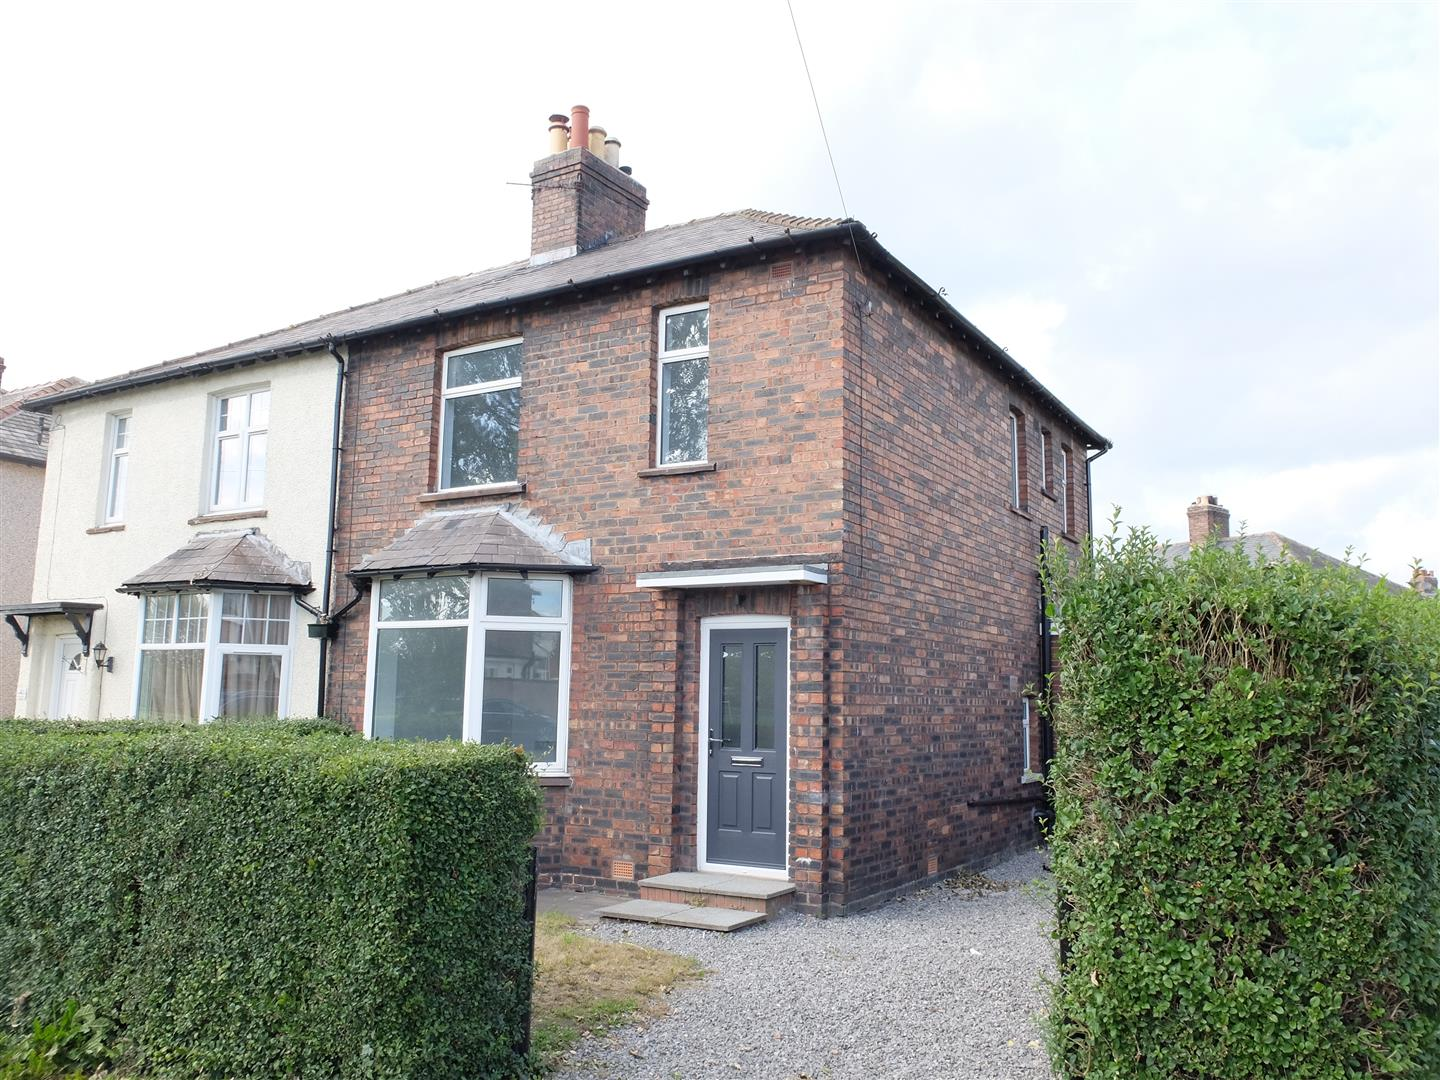 2 Cross Street Carlisle 3 Bedrooms House - Semi-Detached For Sale